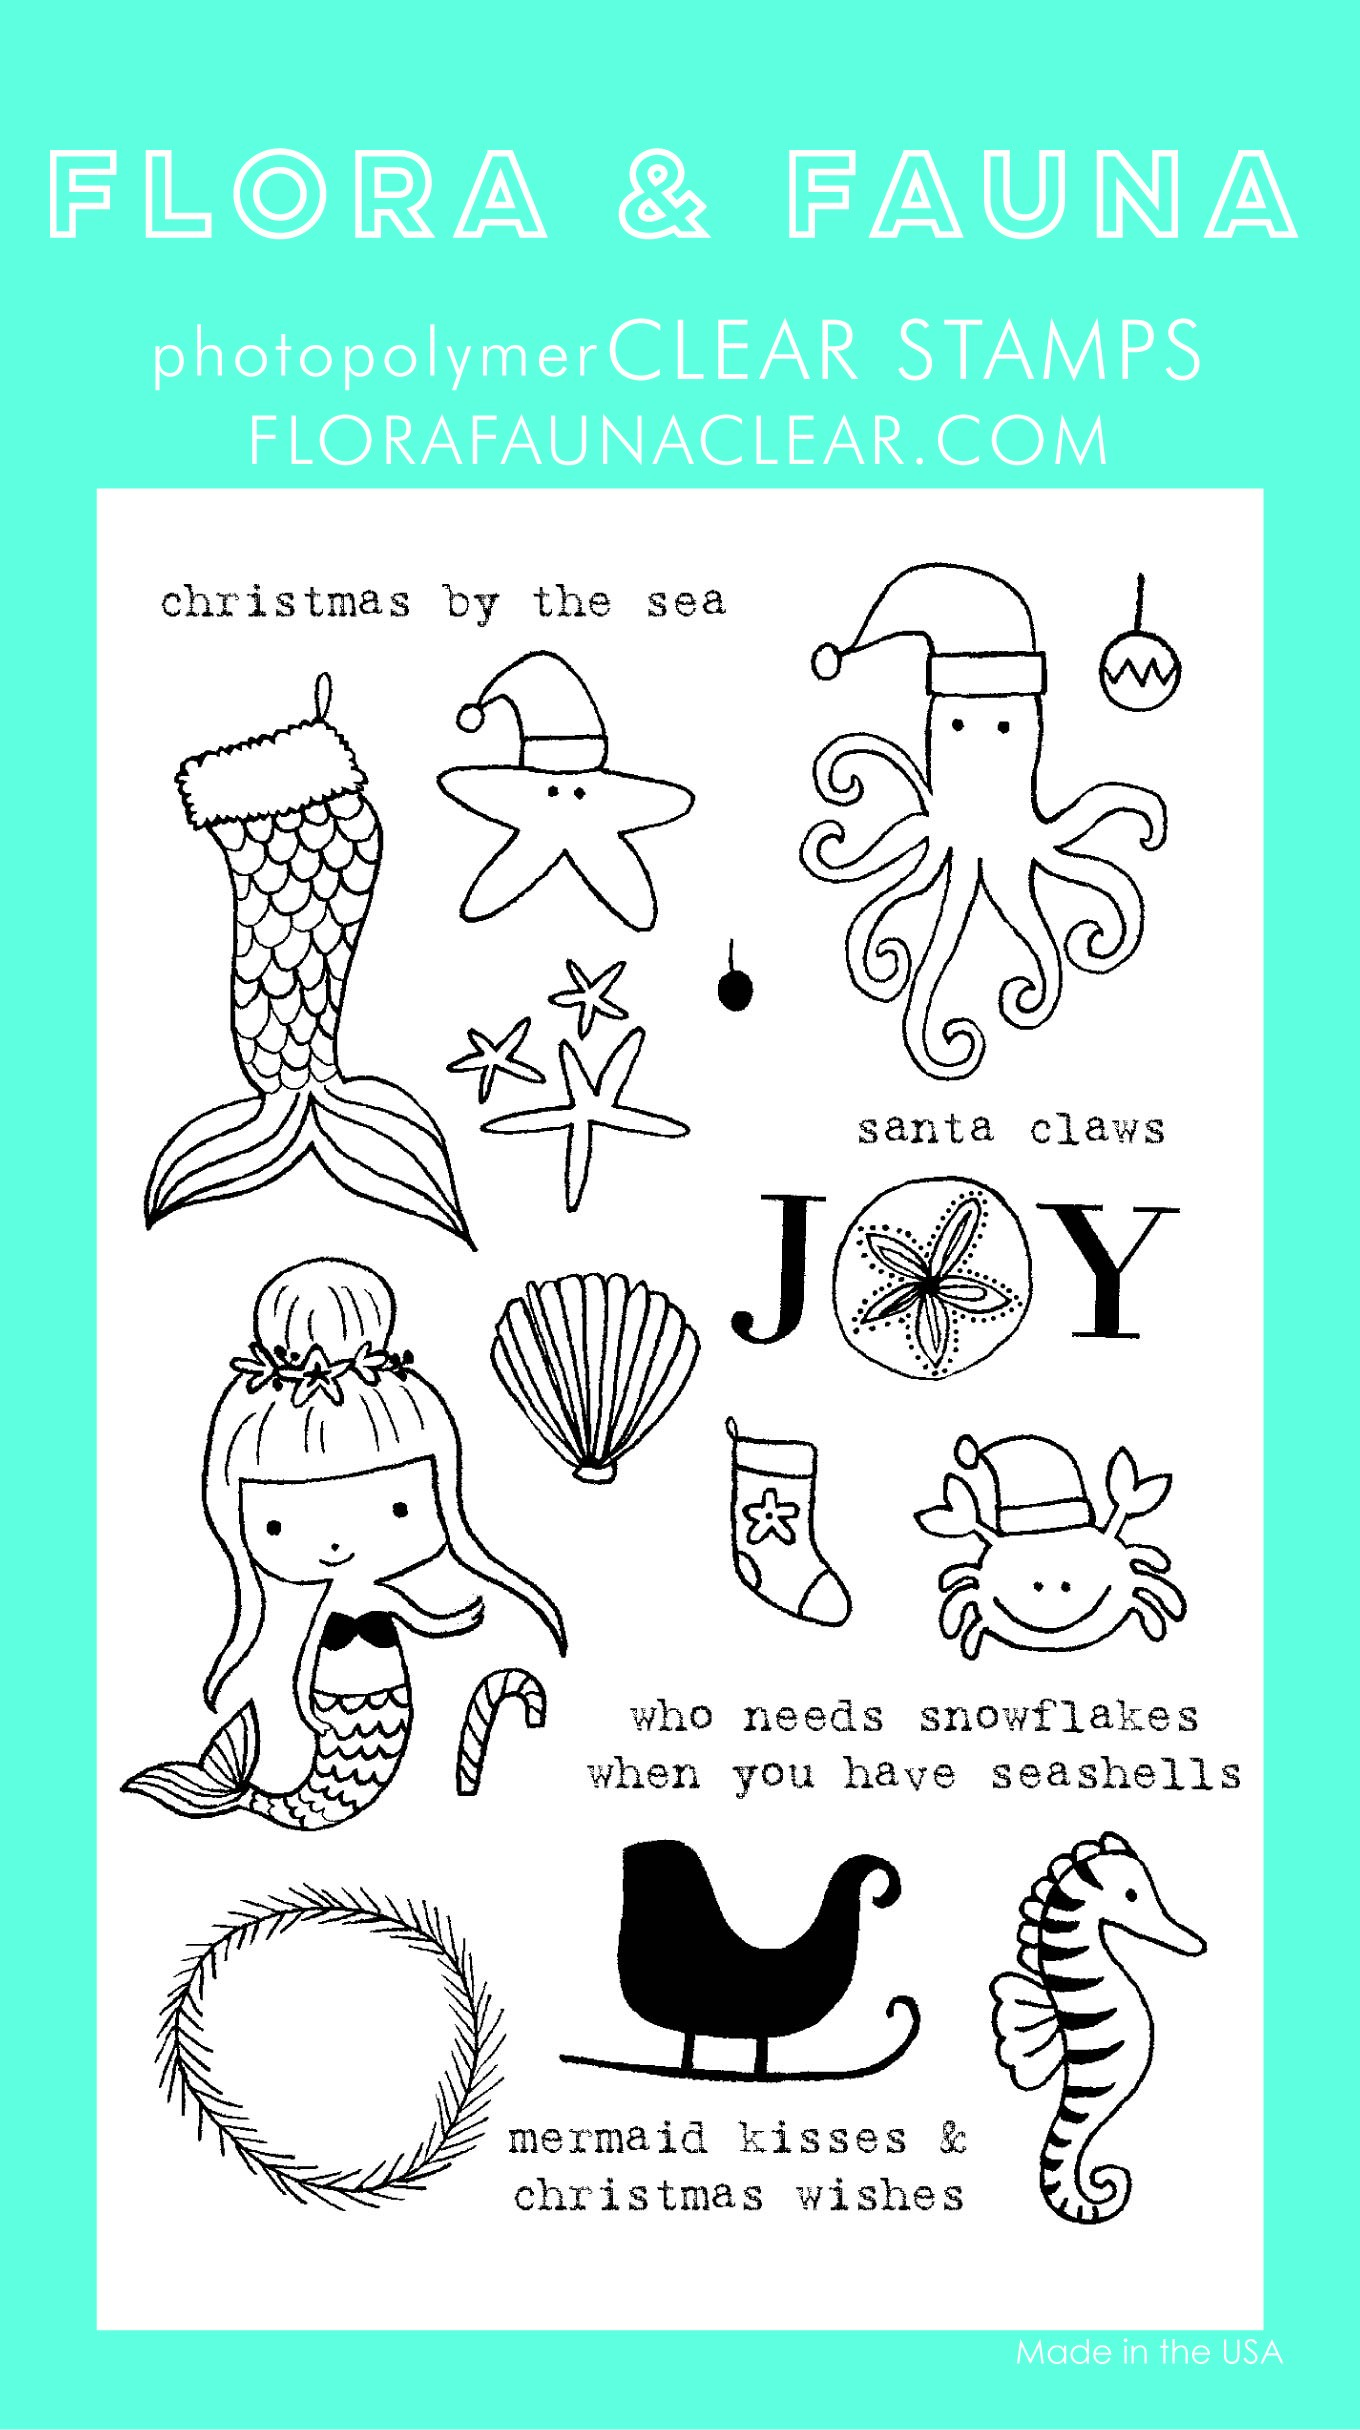 Flora & Fauna Christmas by the Sea Clear Stamp Set